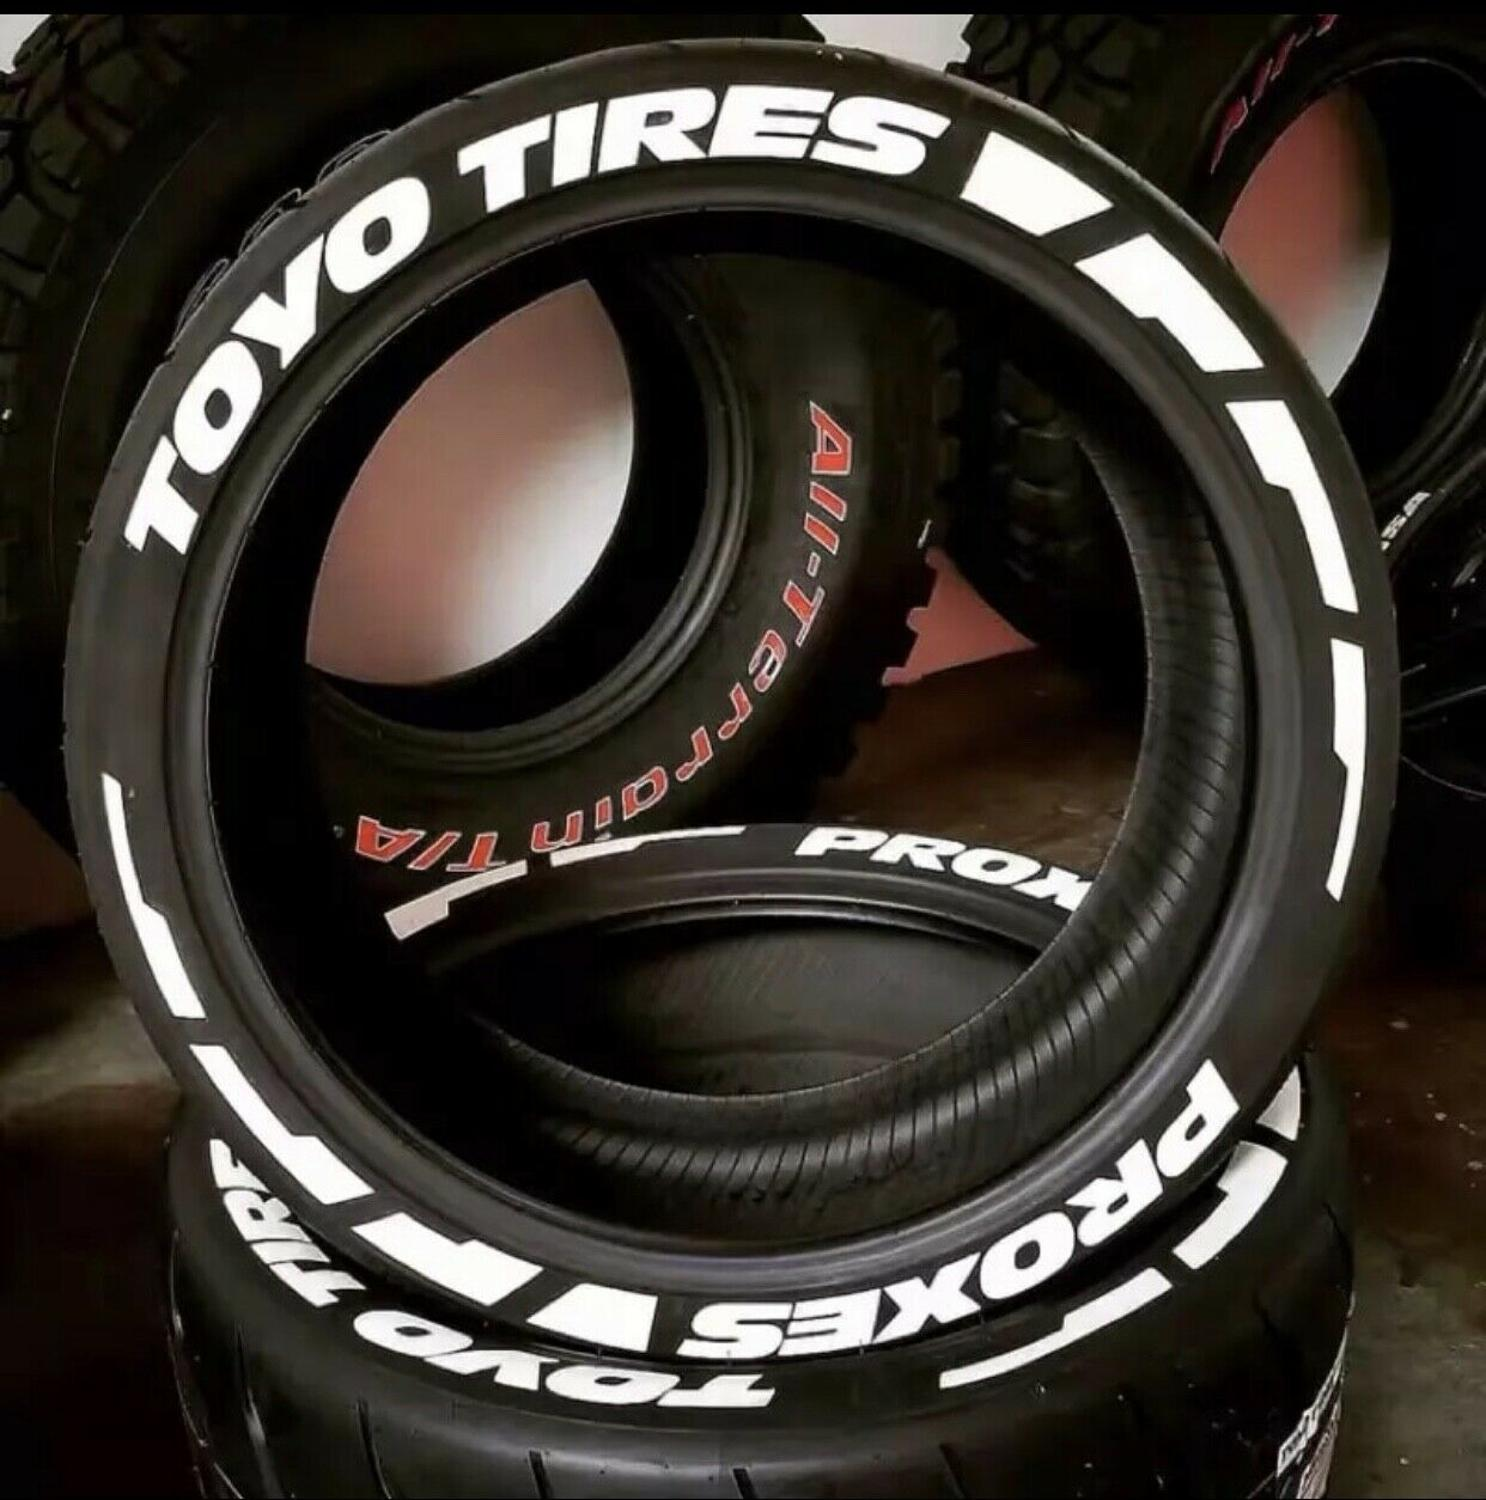 Toyo Tires Proxes Tire Stickers Wheels Label Lettering Decal 3D Fits 14